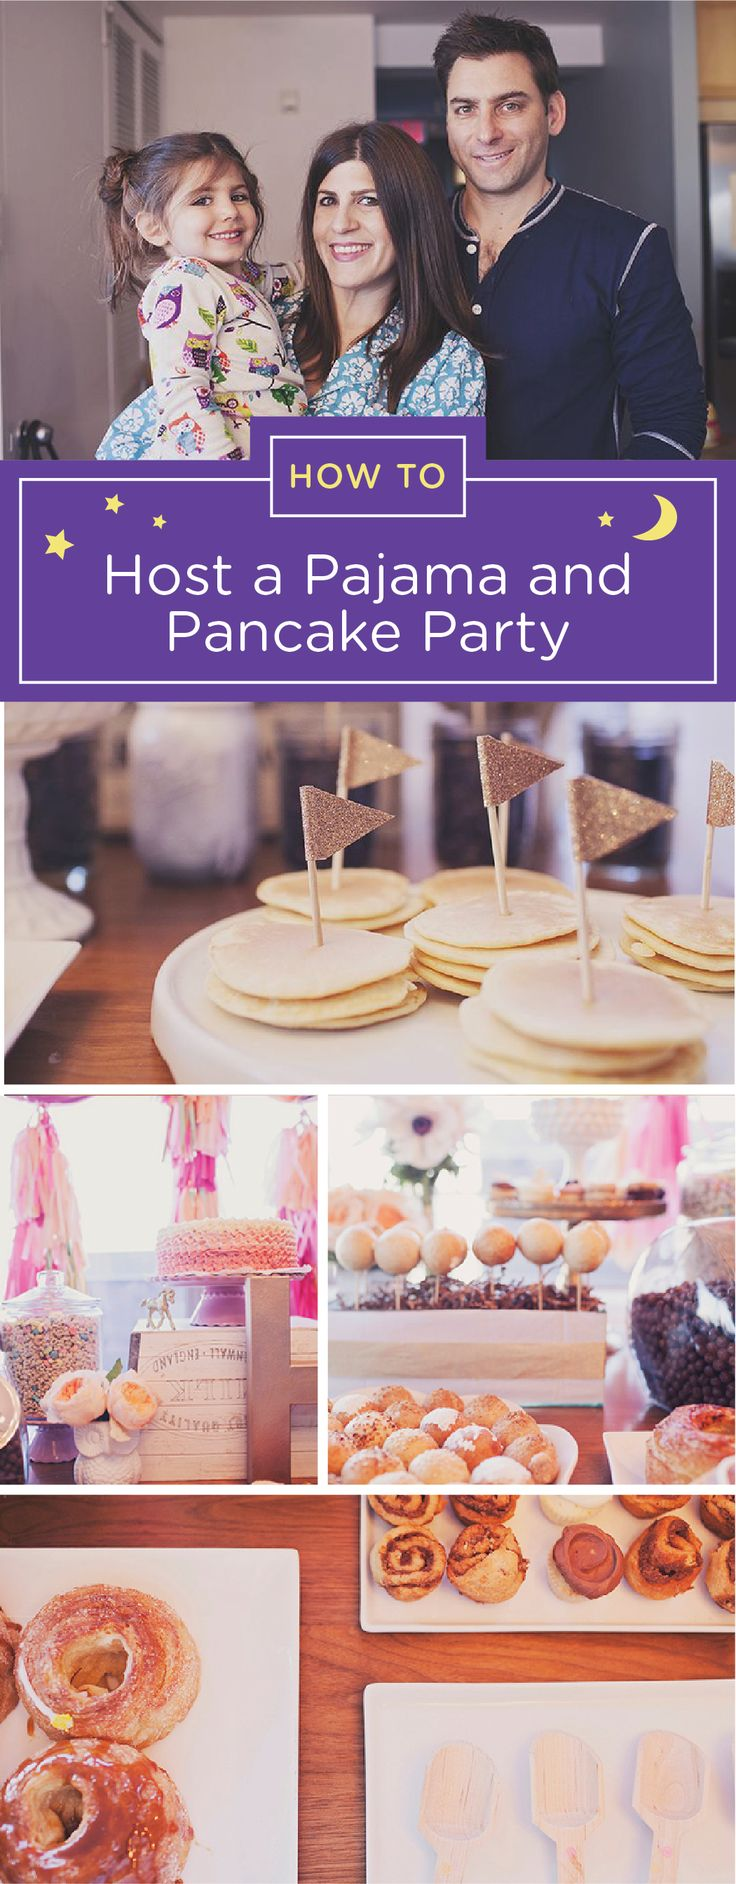 If your child has been talking about having a sleepover party but isn't quite ready yet, this pancake pajama party may be the perfect alternative. Spending the night is optional and fun can still be had by all. Set up a DIY pancake bar and invite guests to come dressed in their coziest pjs. If your kid does decide to turn it into a sleepover, be sure to have her wear GoodNites Bedtime Pants so she's protected against any nighttime bedwetting that may happen.